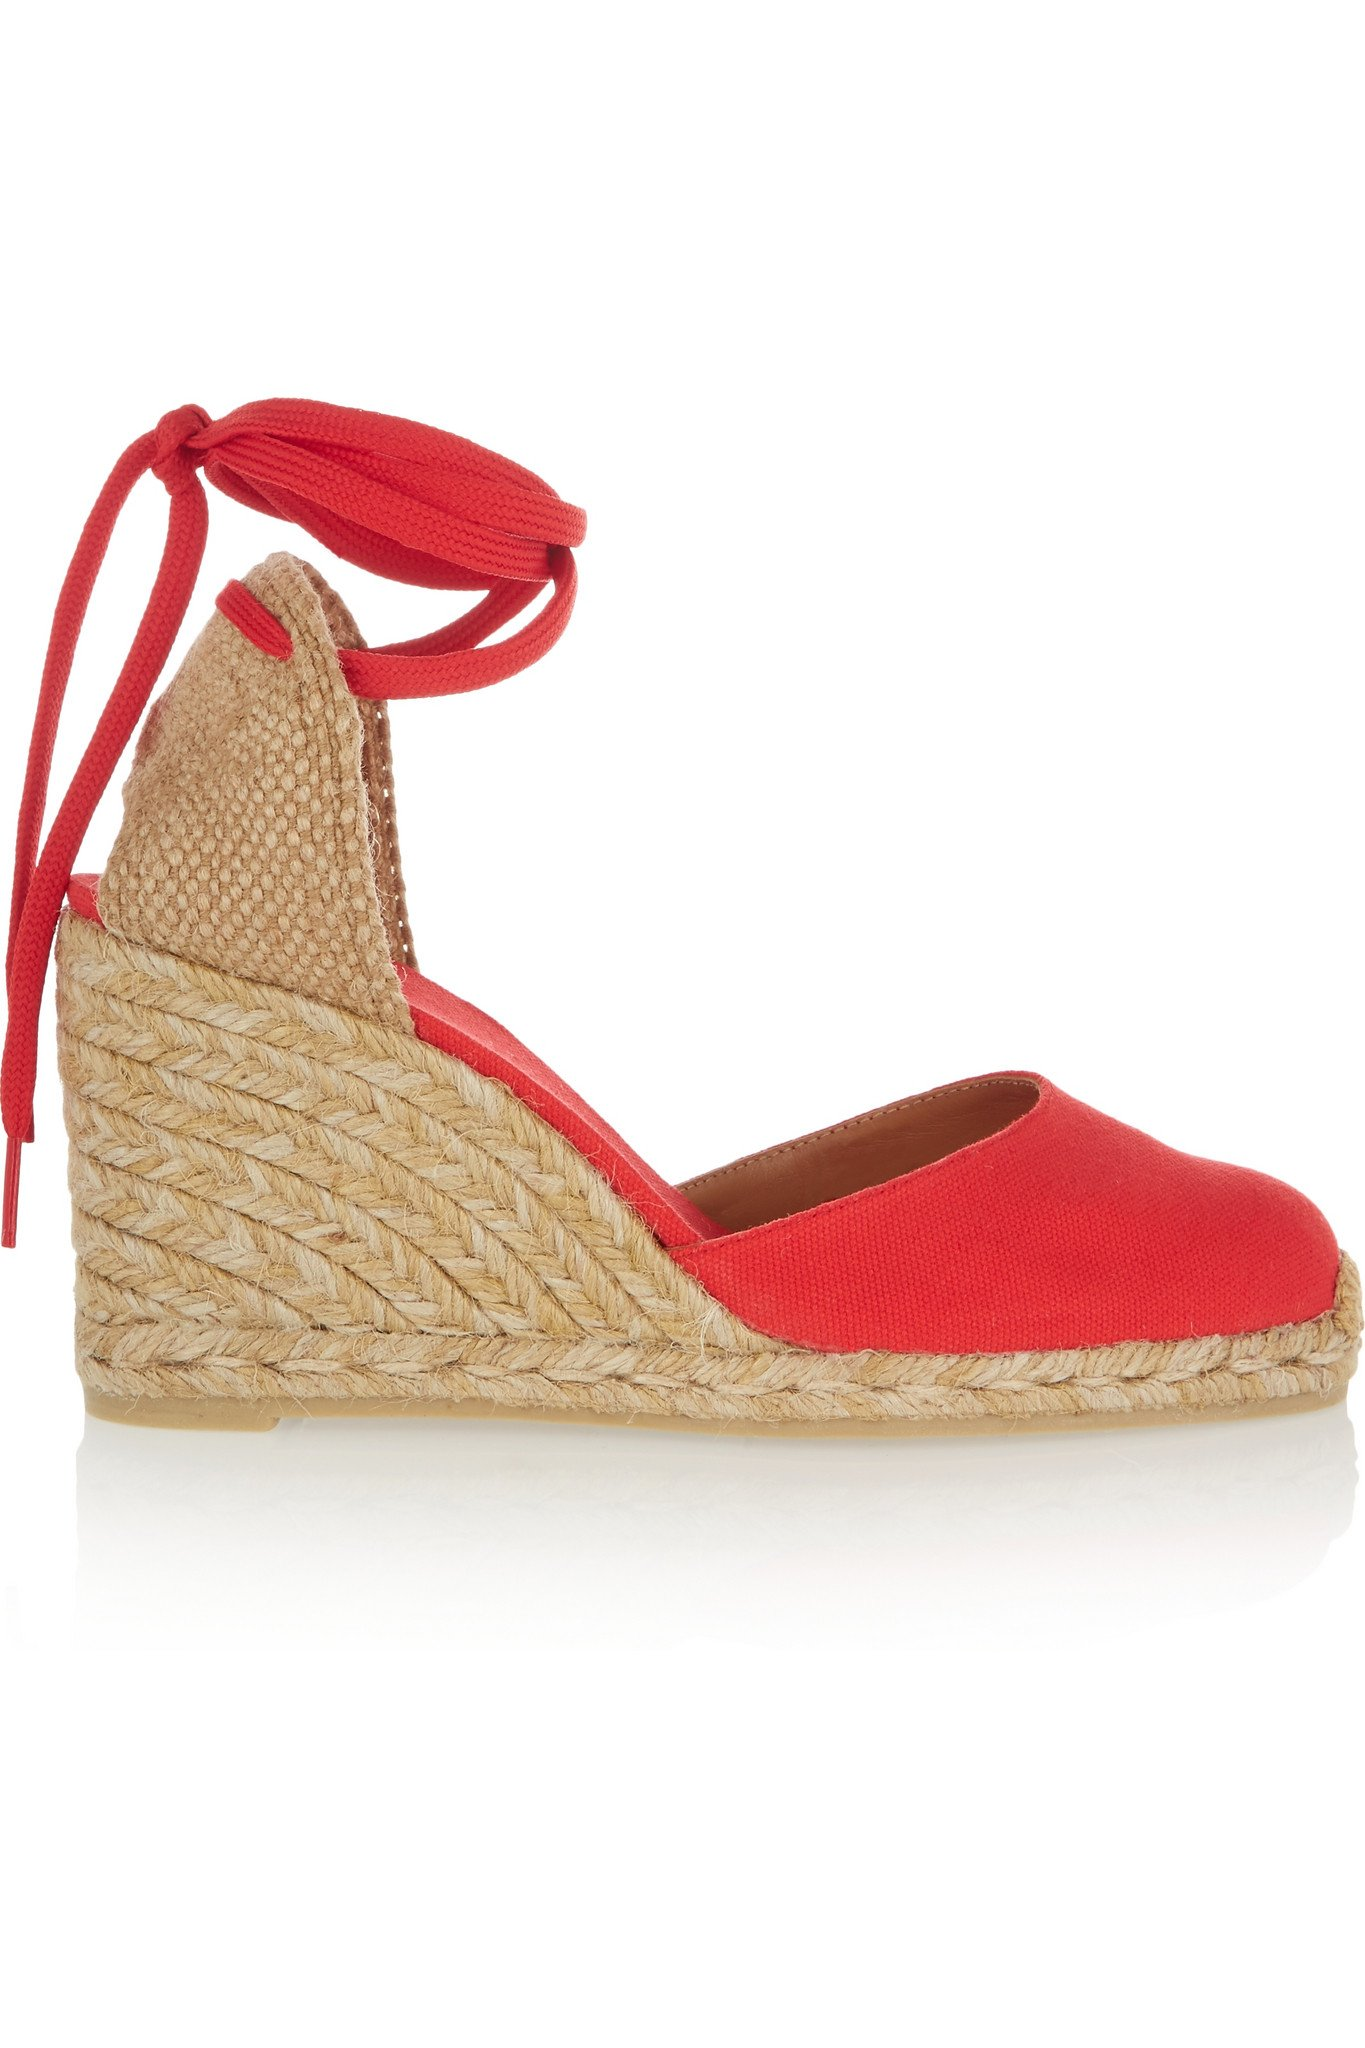 Red Wedge Shoes Uk